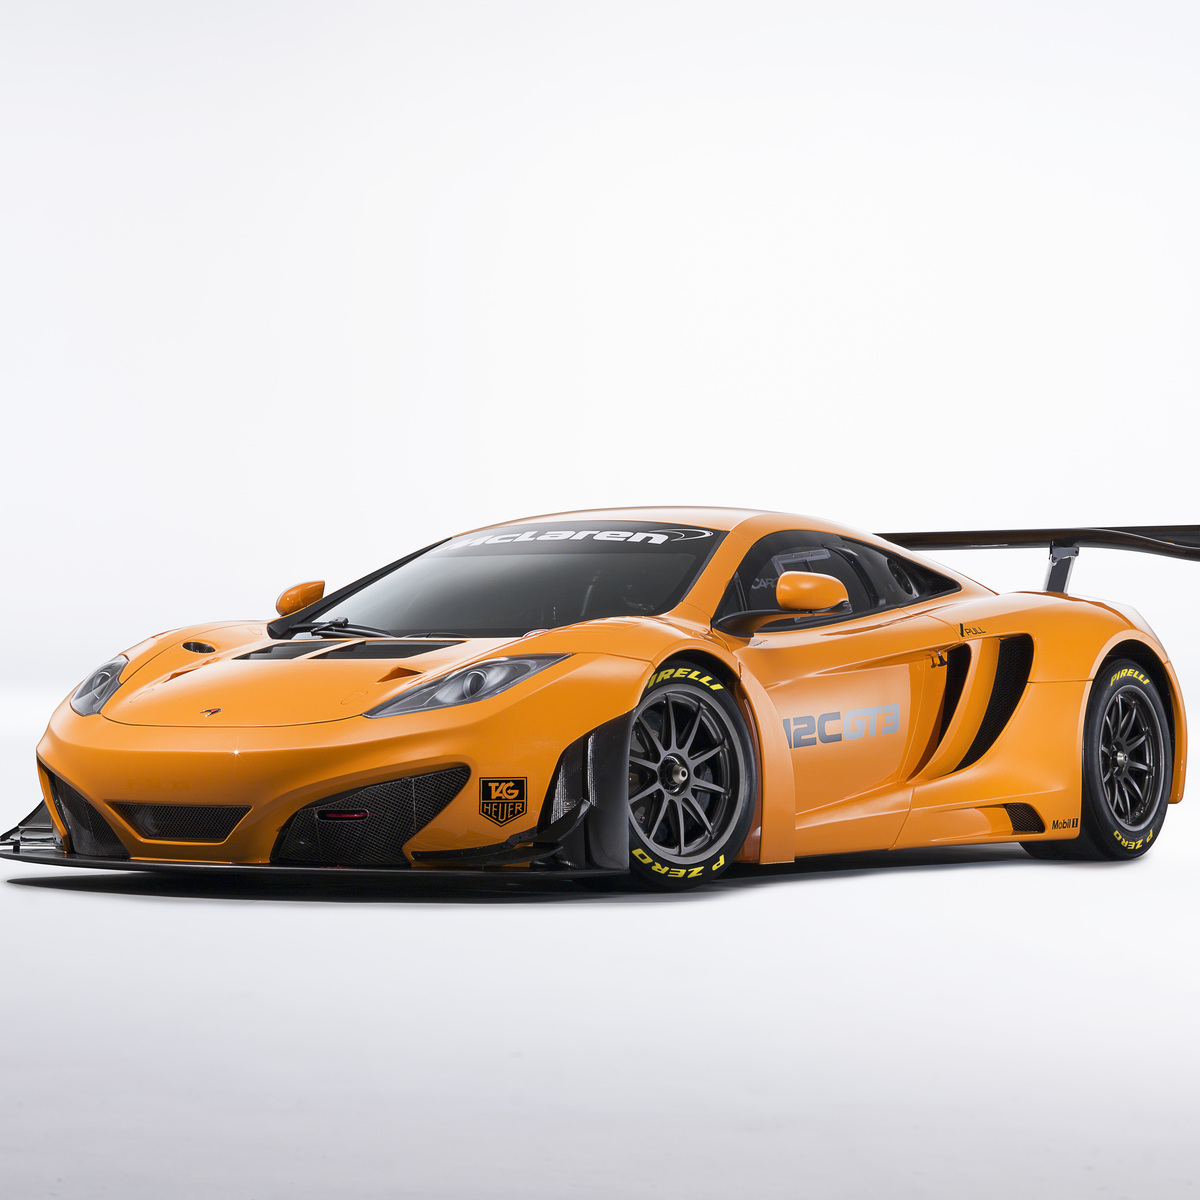 McLaren Customer Racing Models